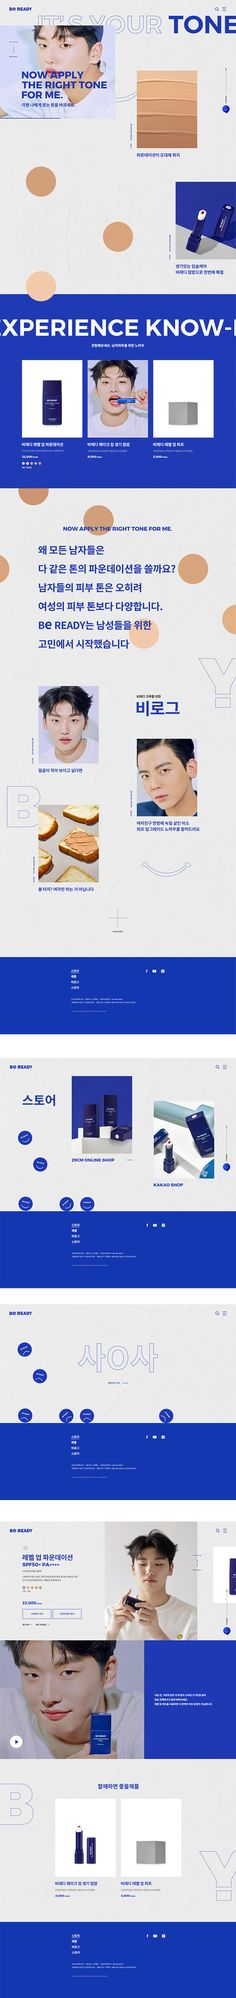 #webdesign Website Layout, Web Layout, Layout Design, Event Landing Page, Event Page, Simple Web Design, Flat Design, Promotional Design, Brand Promotion